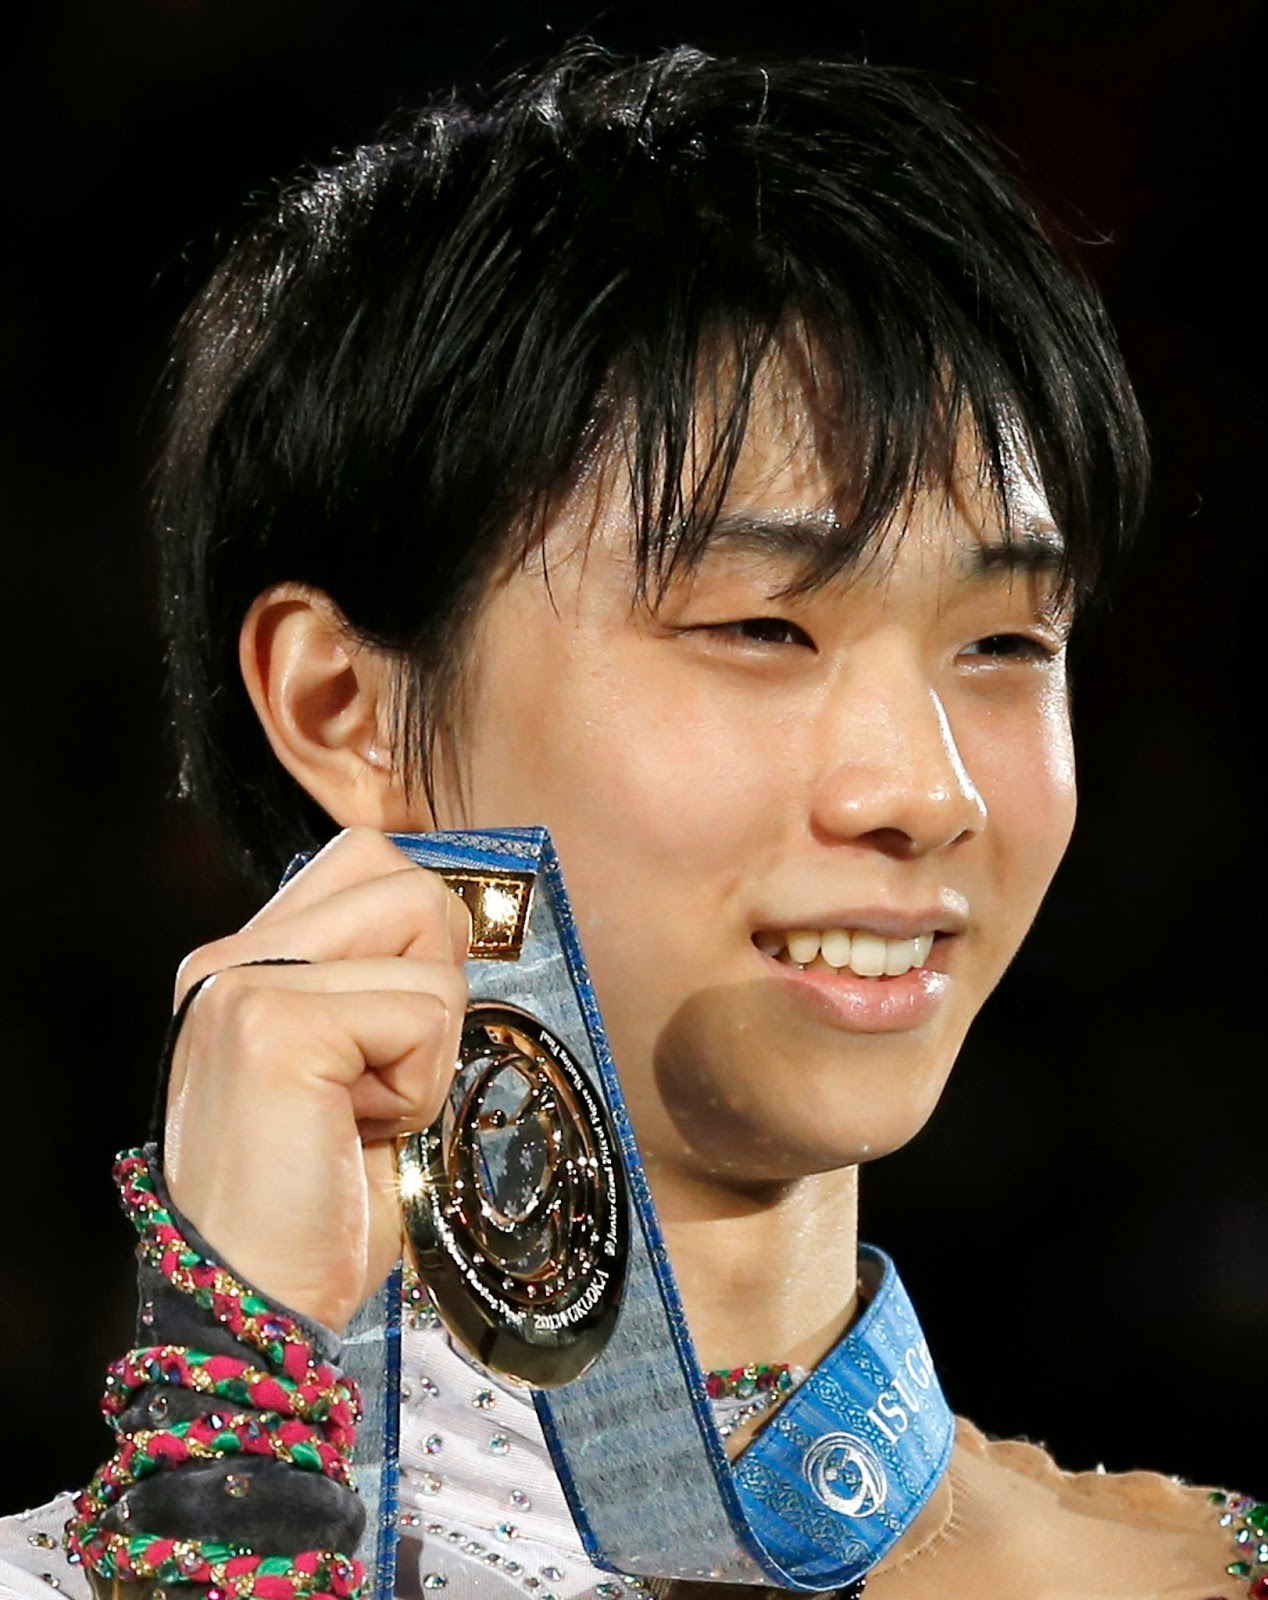 http://www.japantimes.co.jp/sports/2013/12/06/figure-skating/hanyu-shows-impressive-poise-world-class-talent-in-grand-prix-final-triumph/#.UwJ2487X8Us